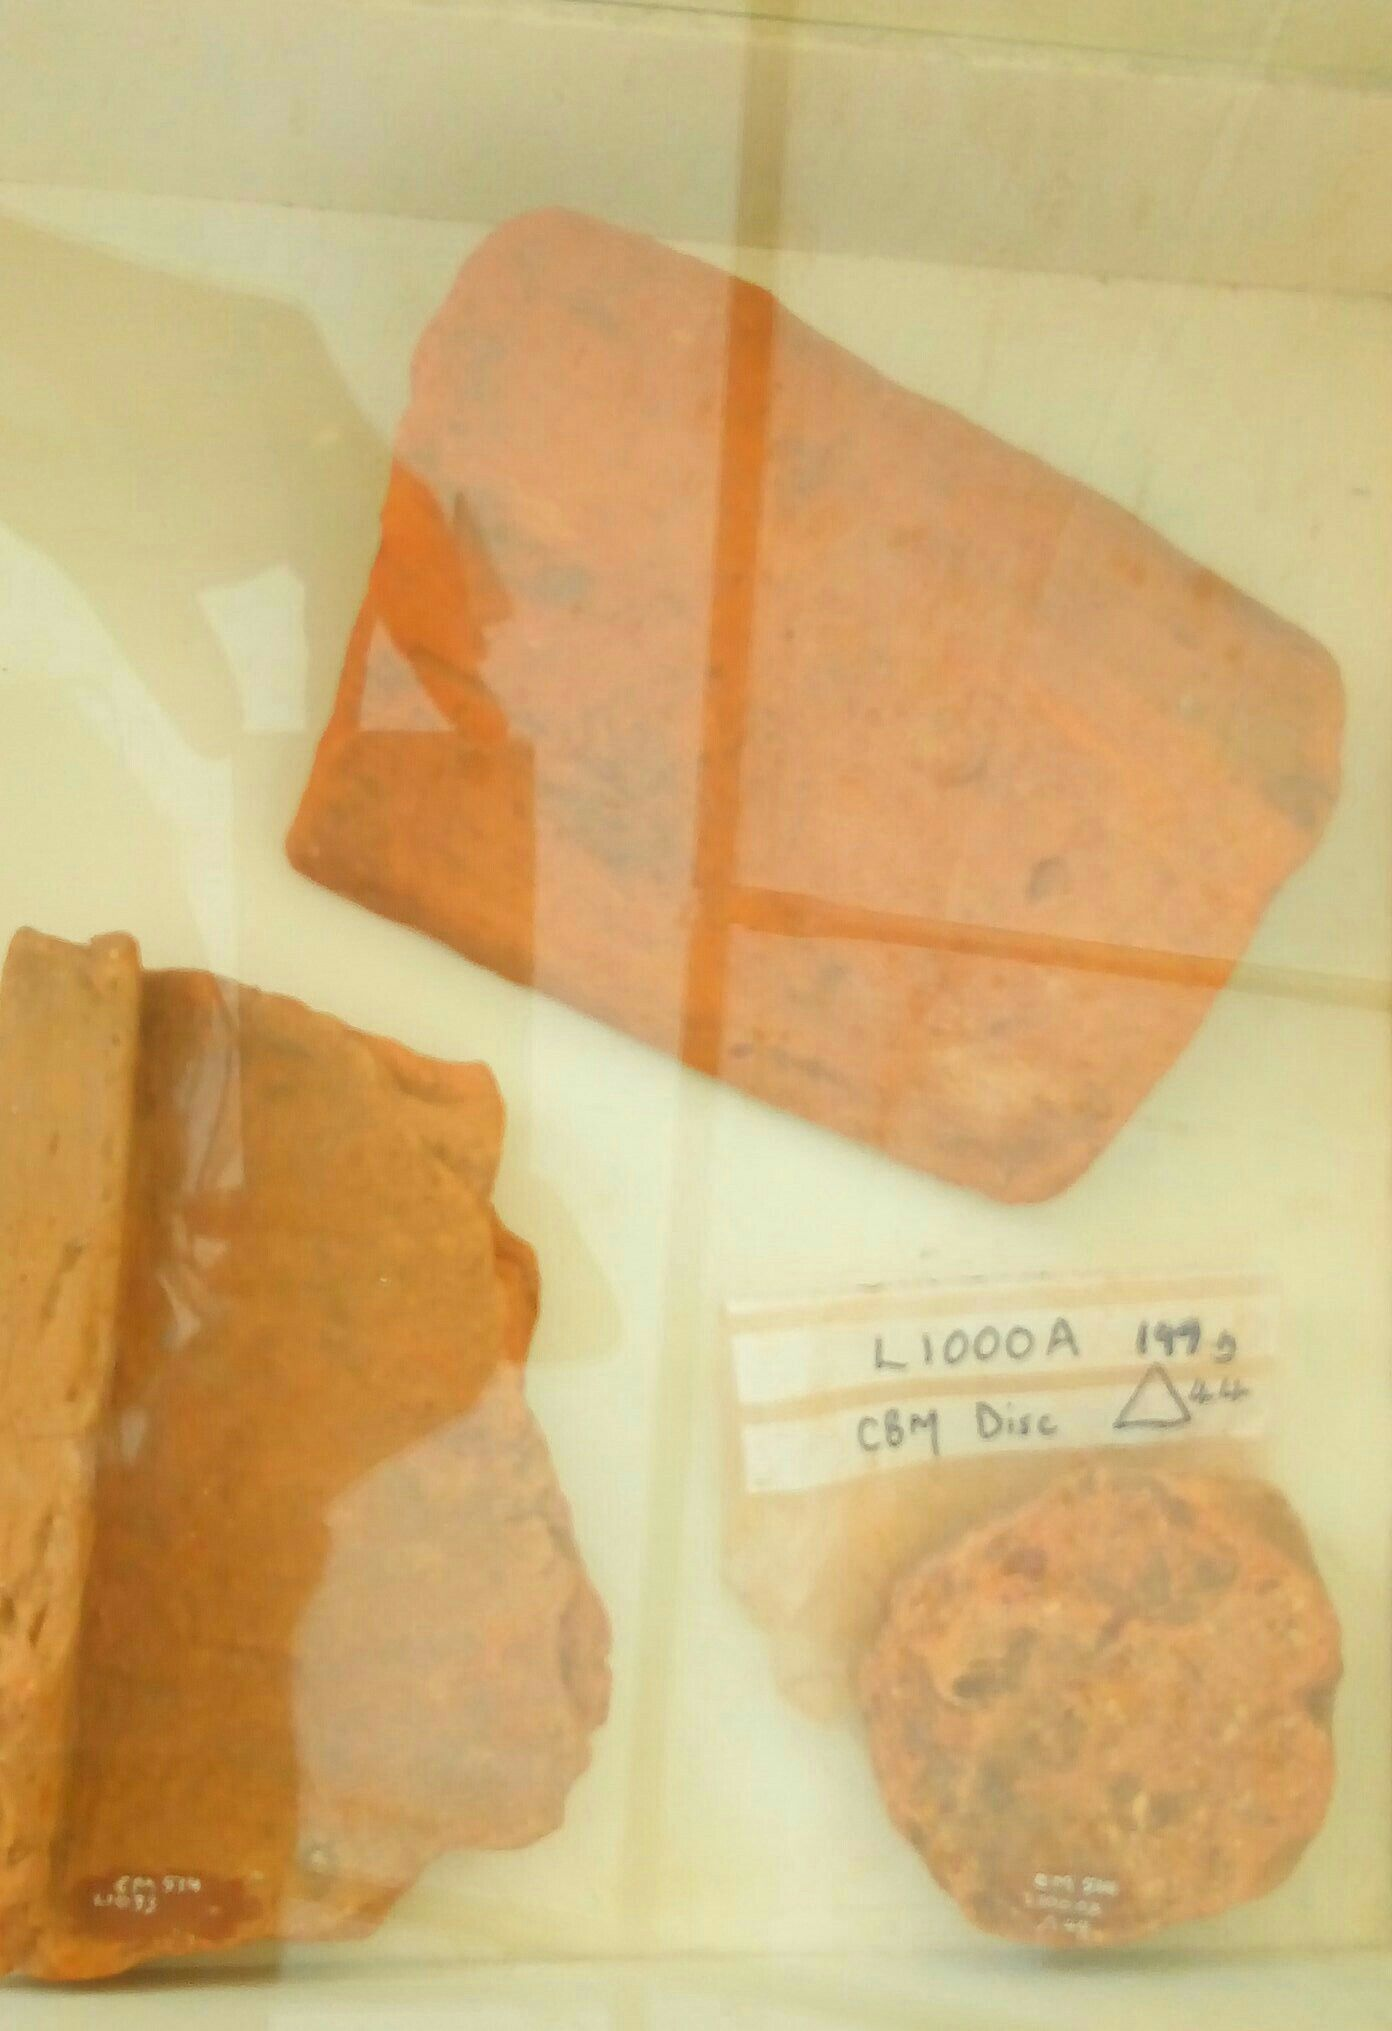 Fragments of Box flue tiles and Ceramic building material  disc, discovered at Colemore by Liss Archaeology Group